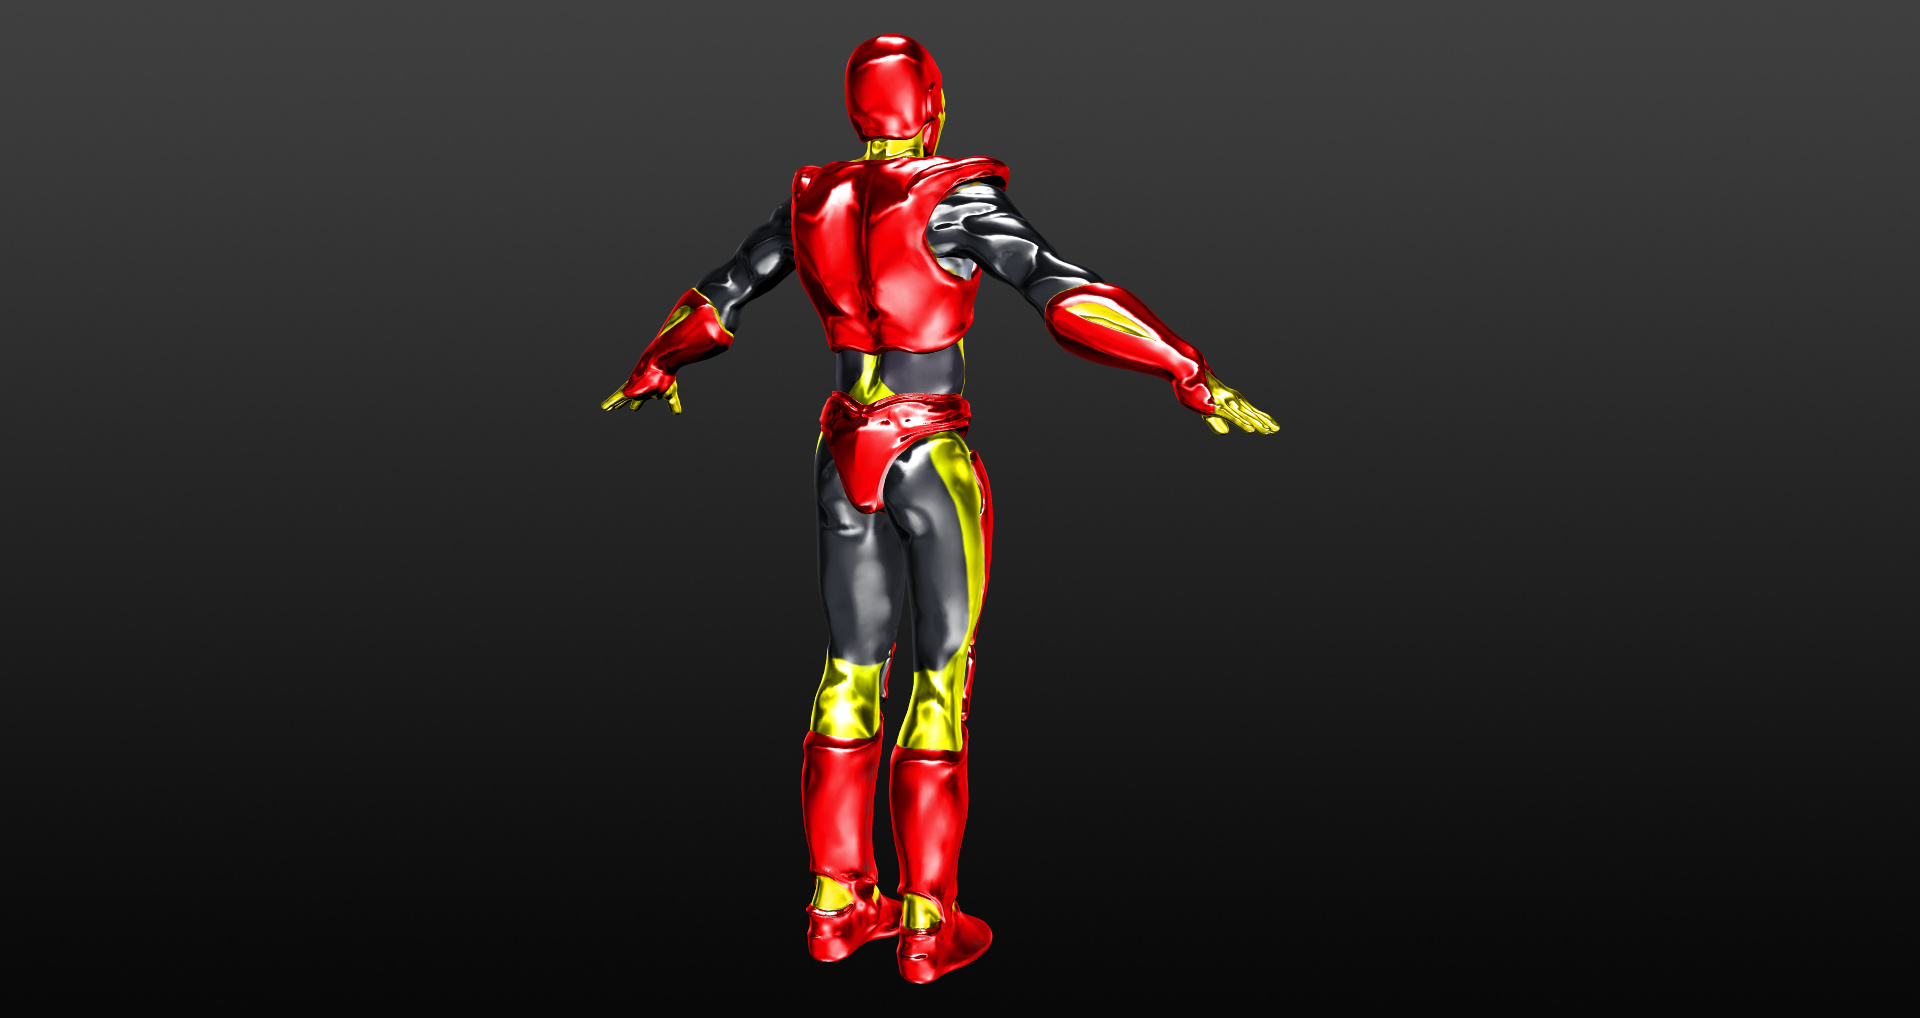 Ironman_Prova24_color3quater_center_sidebig6